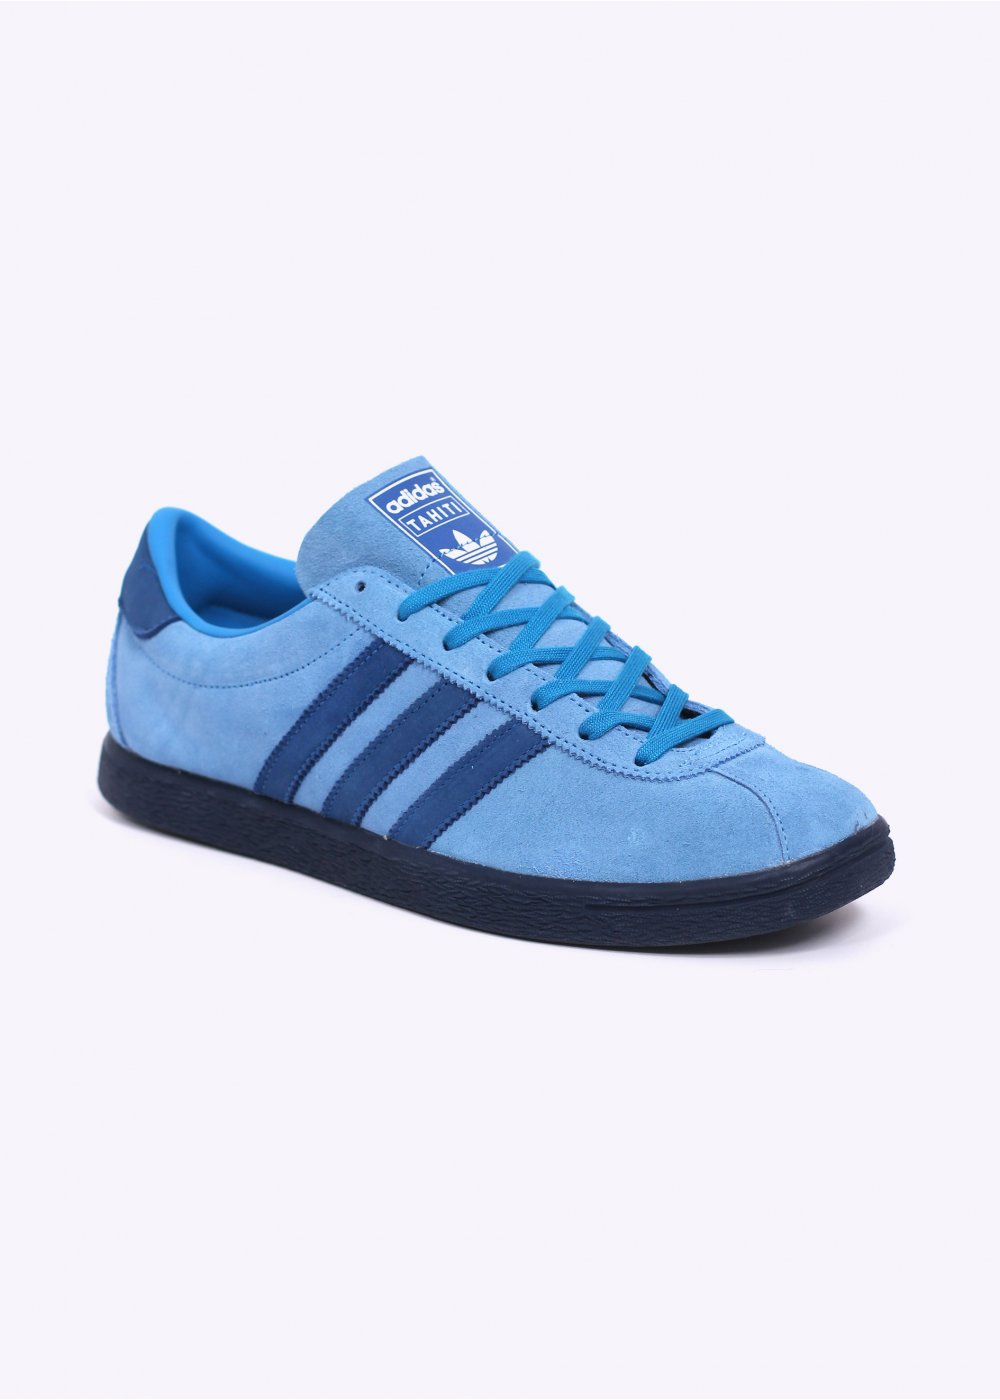 Adidas Originals Tahiti Trainers Light Blue Blue